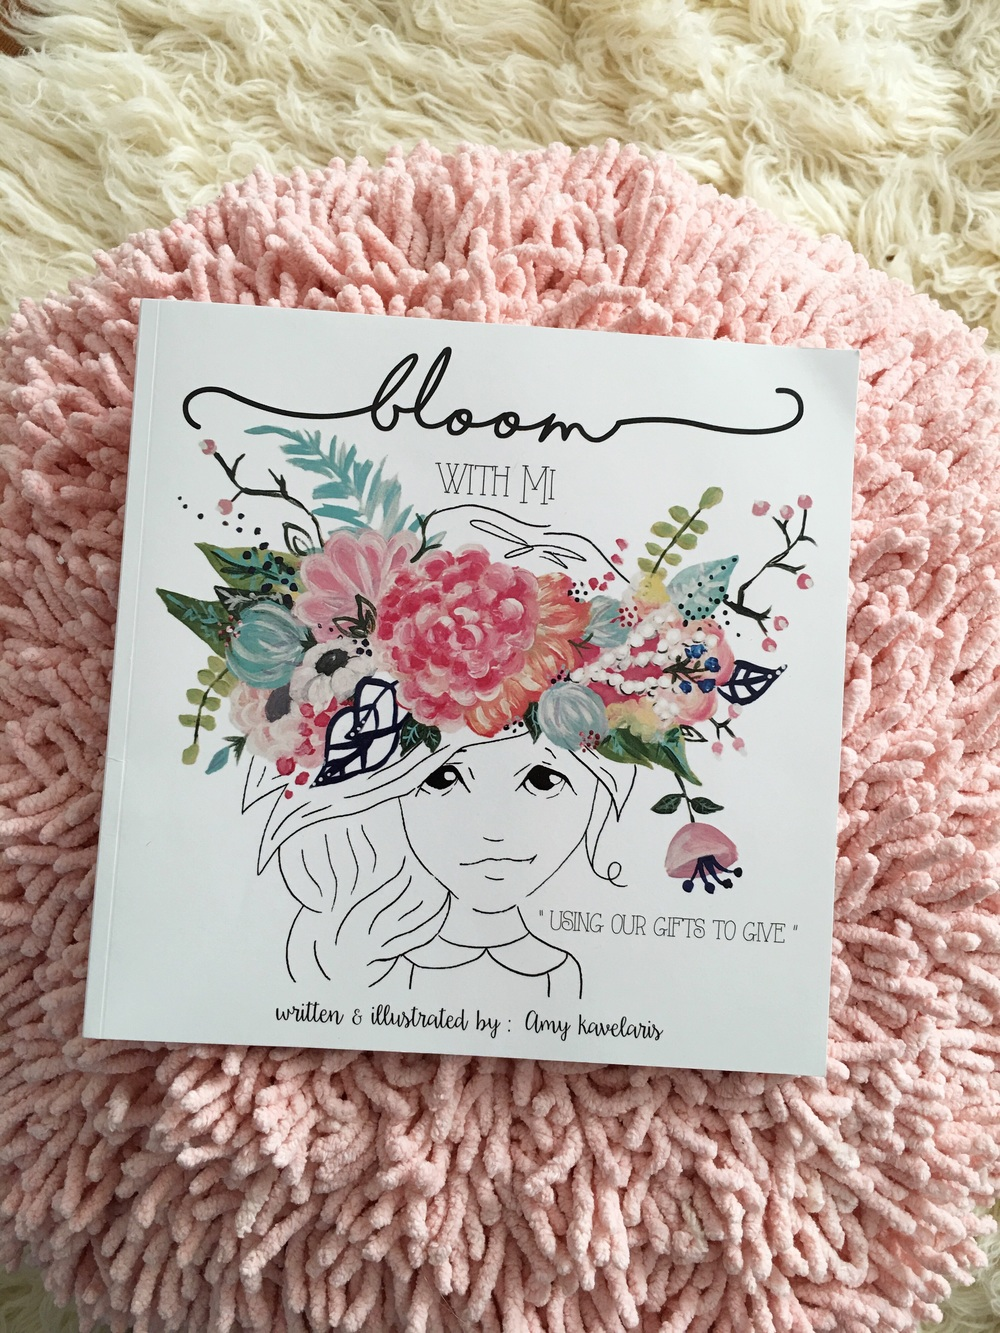 "We are excited about our friend, Amy Kavelaris's new book! It's called Bloom with MI, ""Using Our Gifts To Give!"" It's a beautiful book that captures the essence of childhood and giving."